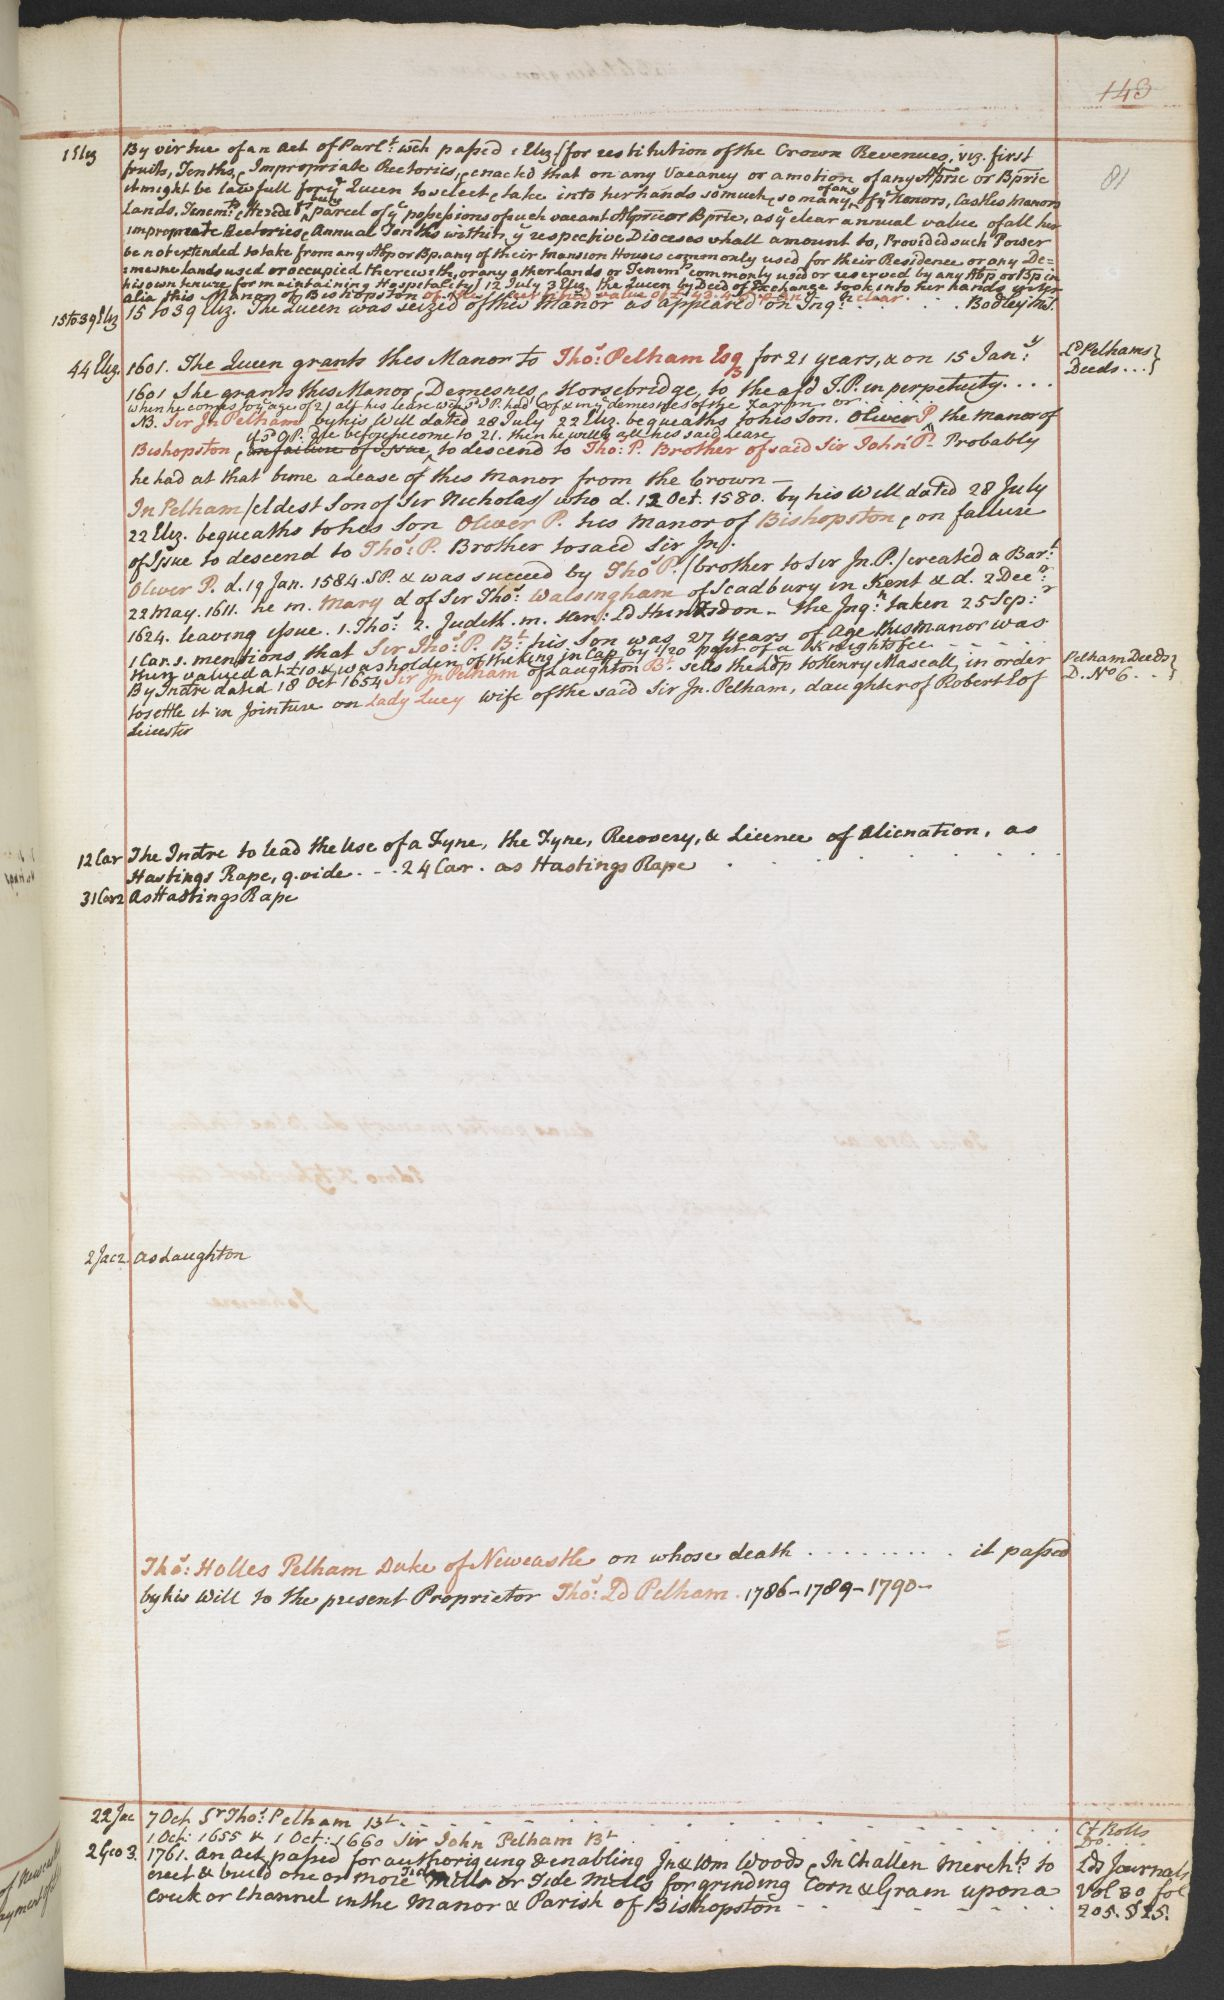 A page from Dr William Burrell's Notes on the Manor of Bishopstone, Sussex.